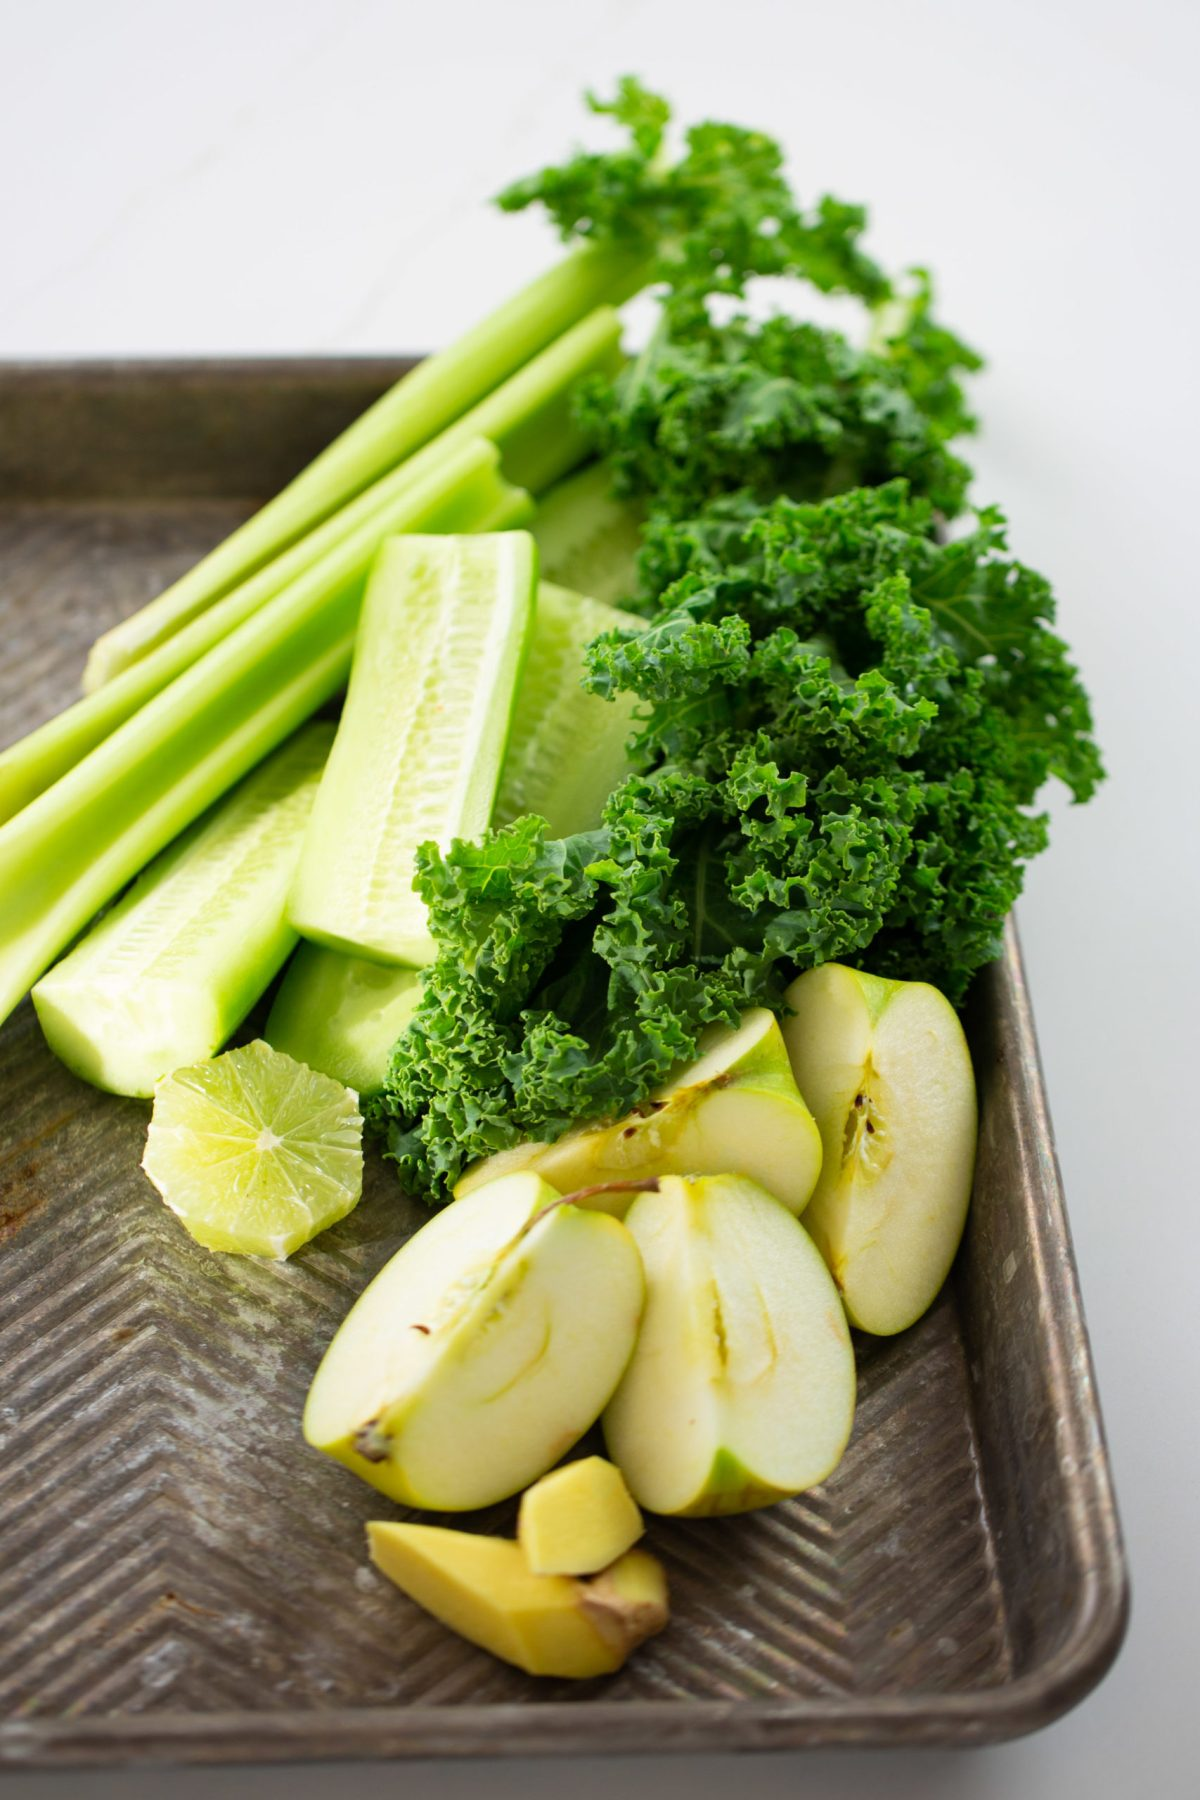 ingredients to make green juice on a tray